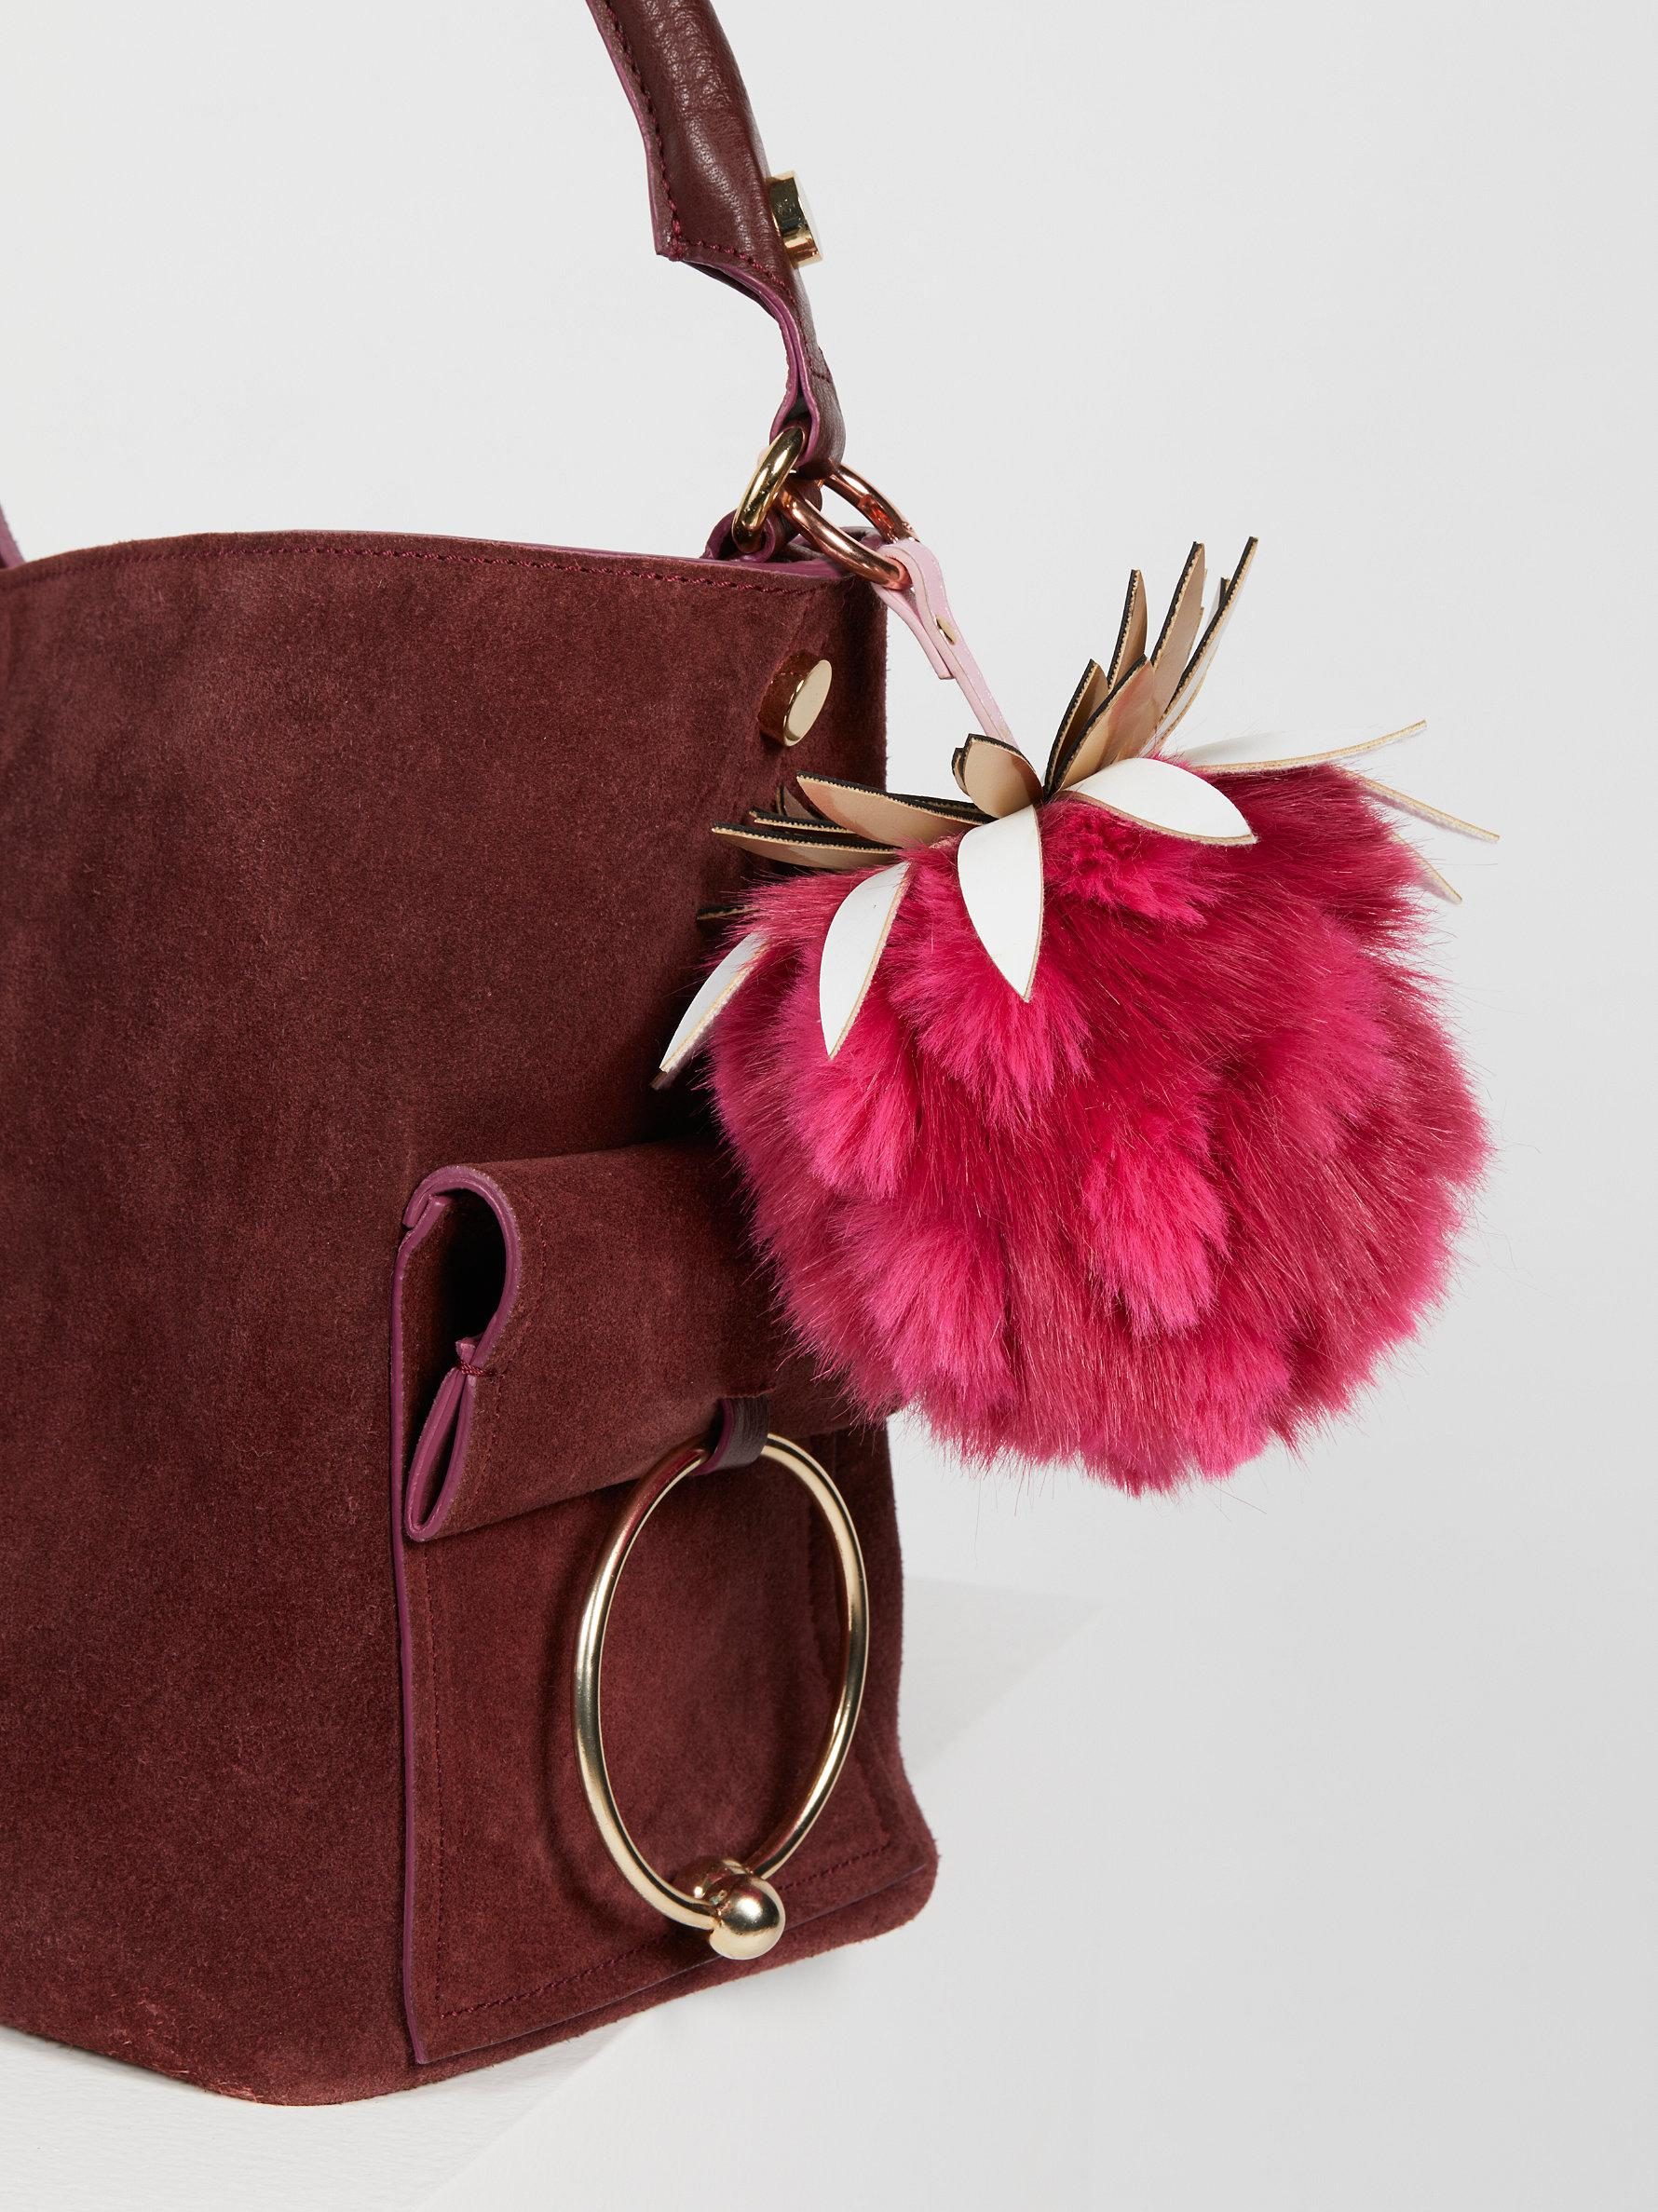 4f6c4432d5 Lyst - Free People Pineapple Faux Fur Bag Charm in Pink